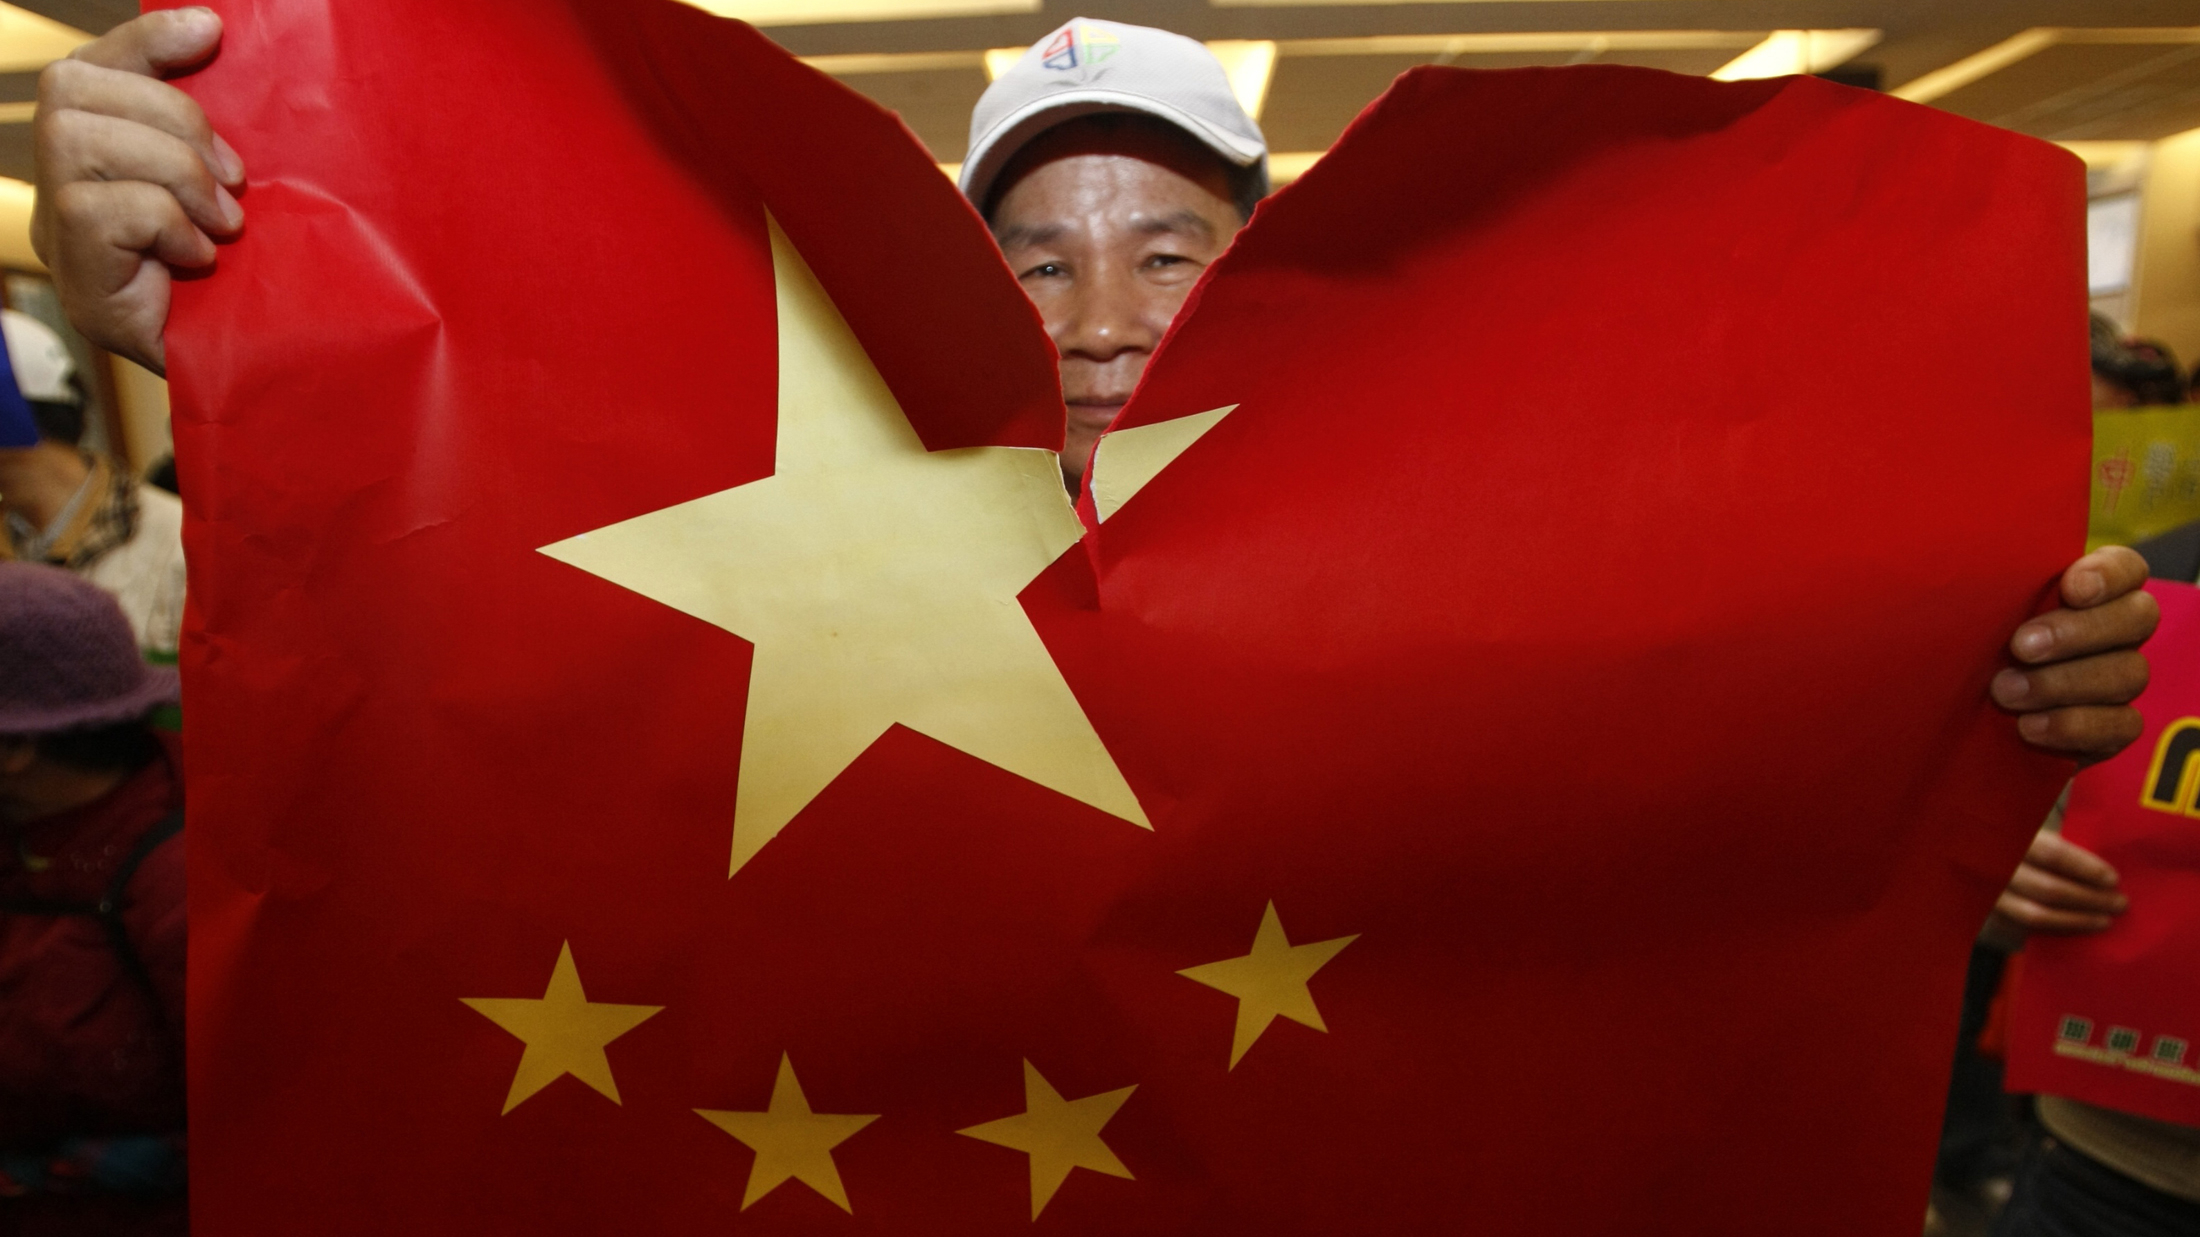 A protester tears a China flag during Chairman of China's Association for Relations Across the Taiwan Straits (ARATS) Chen Yunlin's visit to the Taiwan National Museum before cross straits meetings in Taipei December 20, 2010. Taiwan and China are planning to sign a medical agreement to share information on epidemics and cooperate in developing new drugs. REUTERS/Pichi Chuang